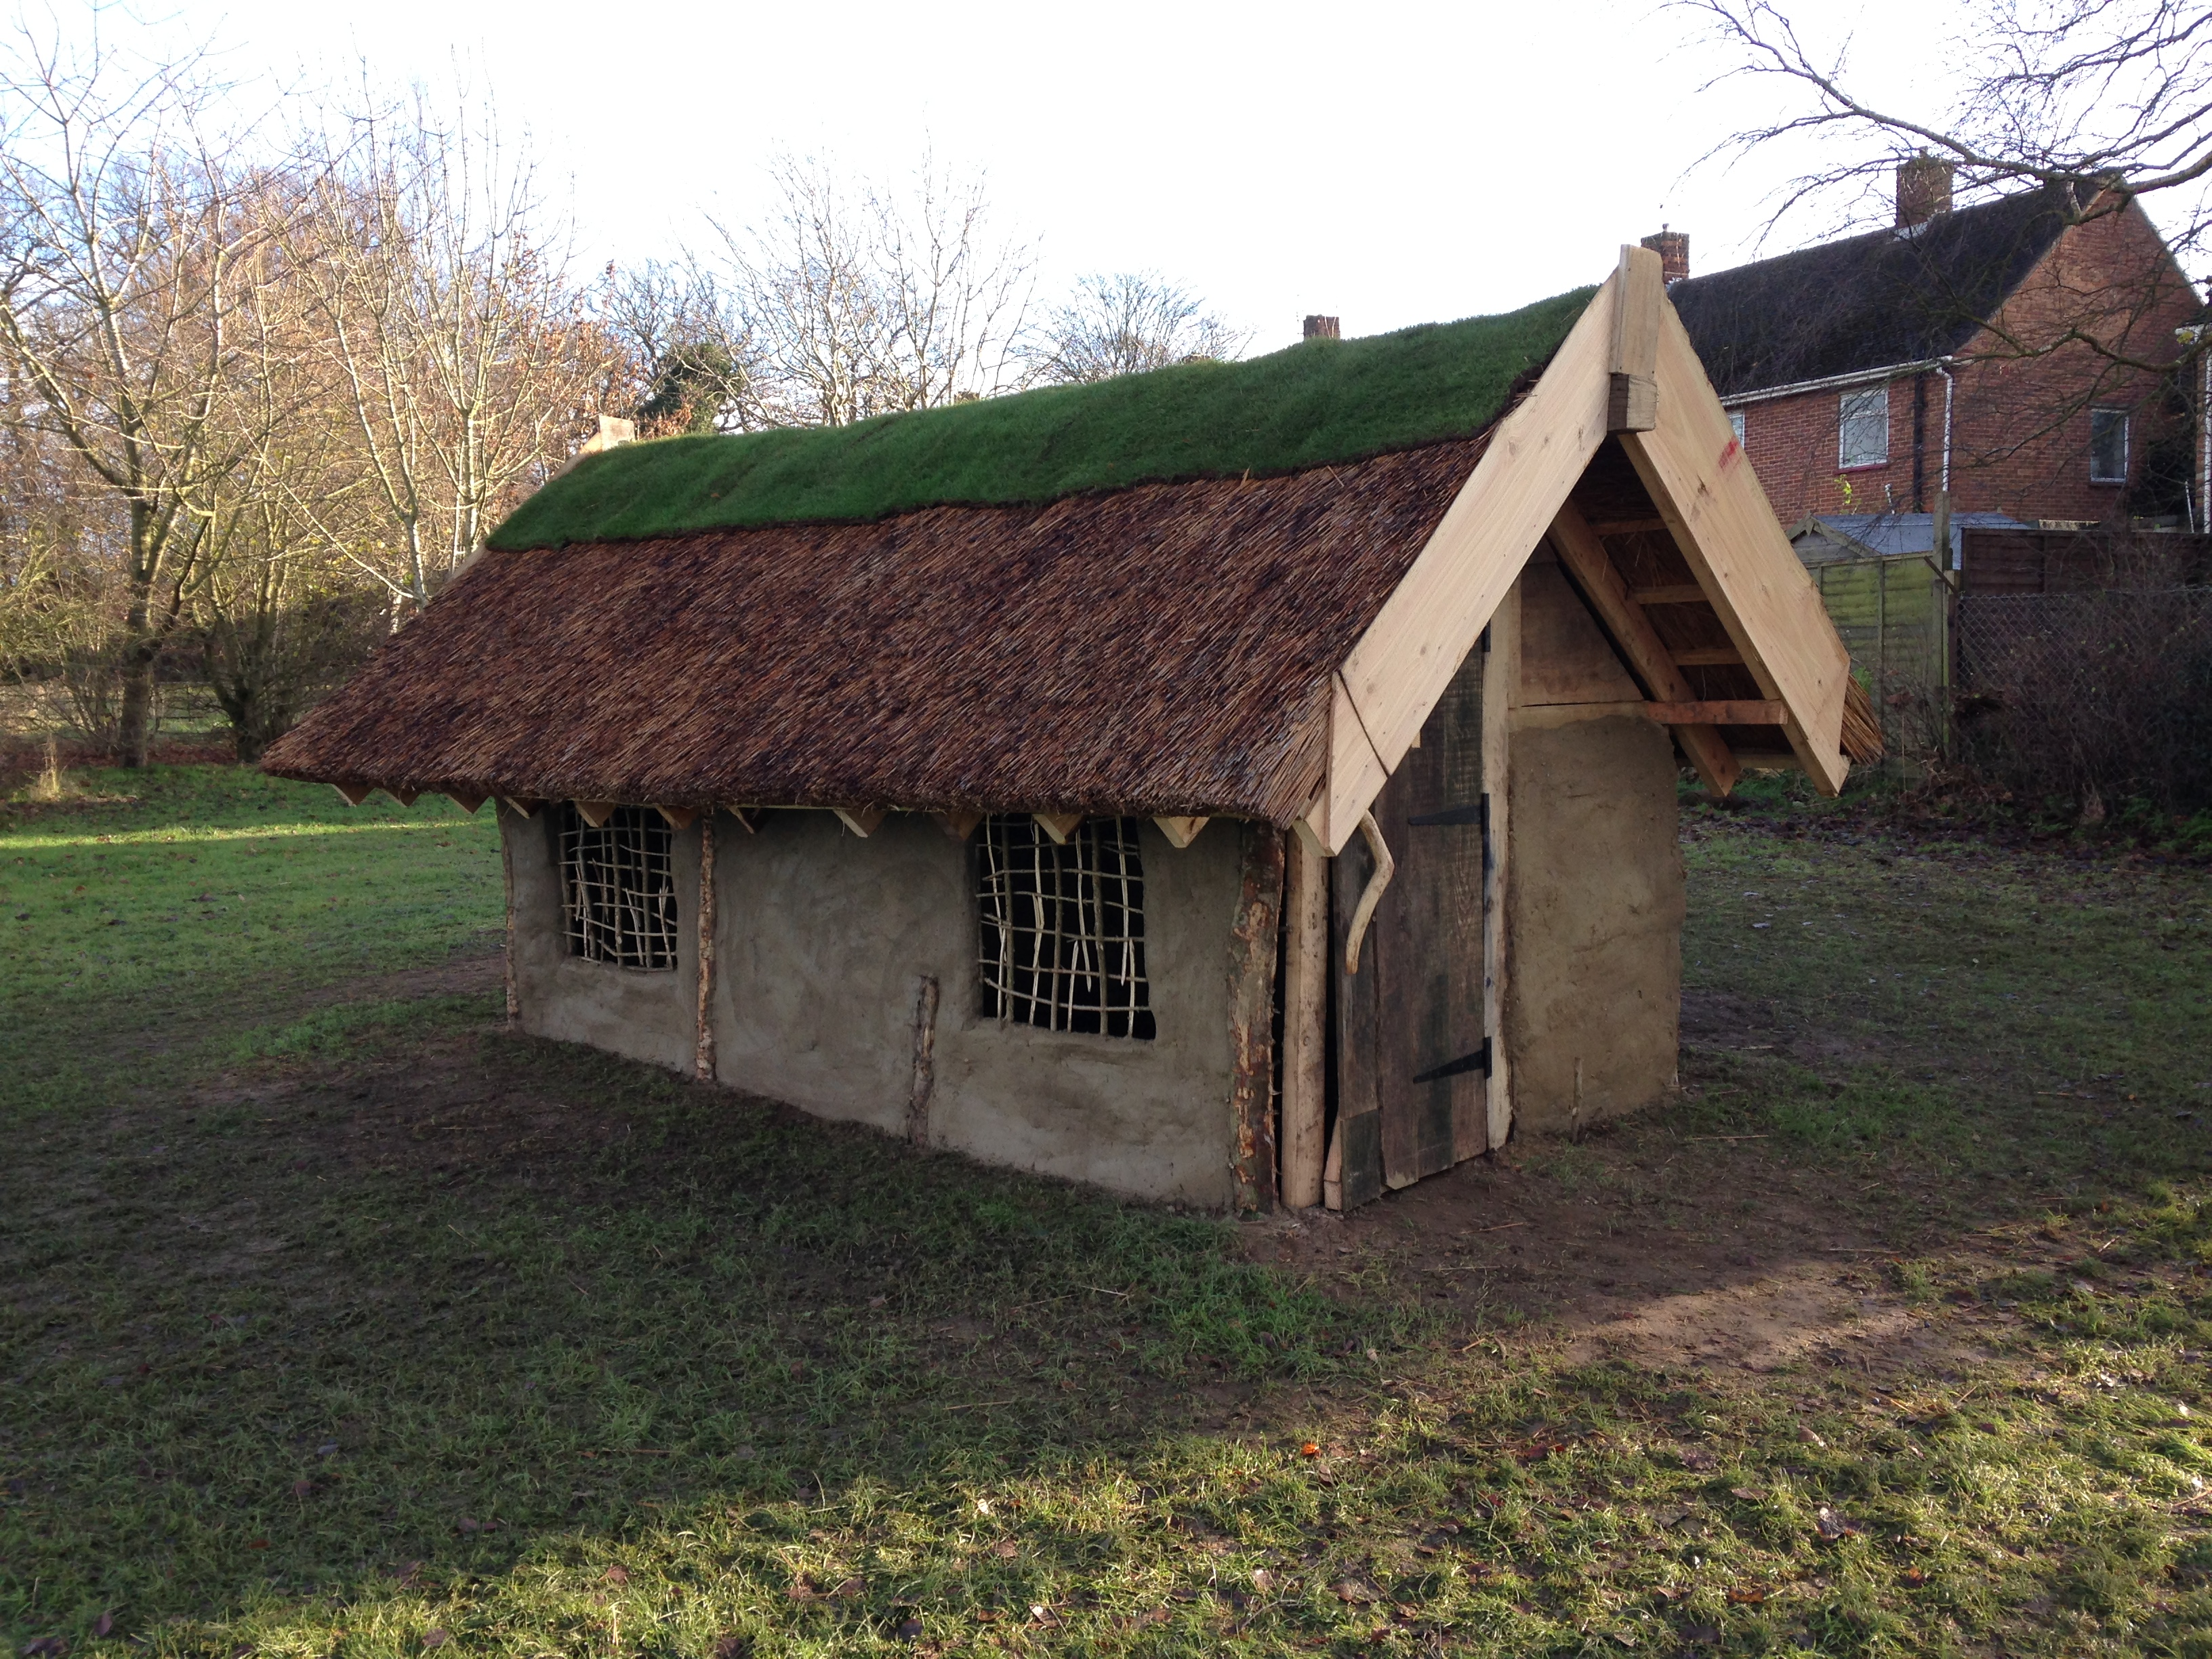 Build an anlgo saxon longhouse at key stage 2 history for House models to build